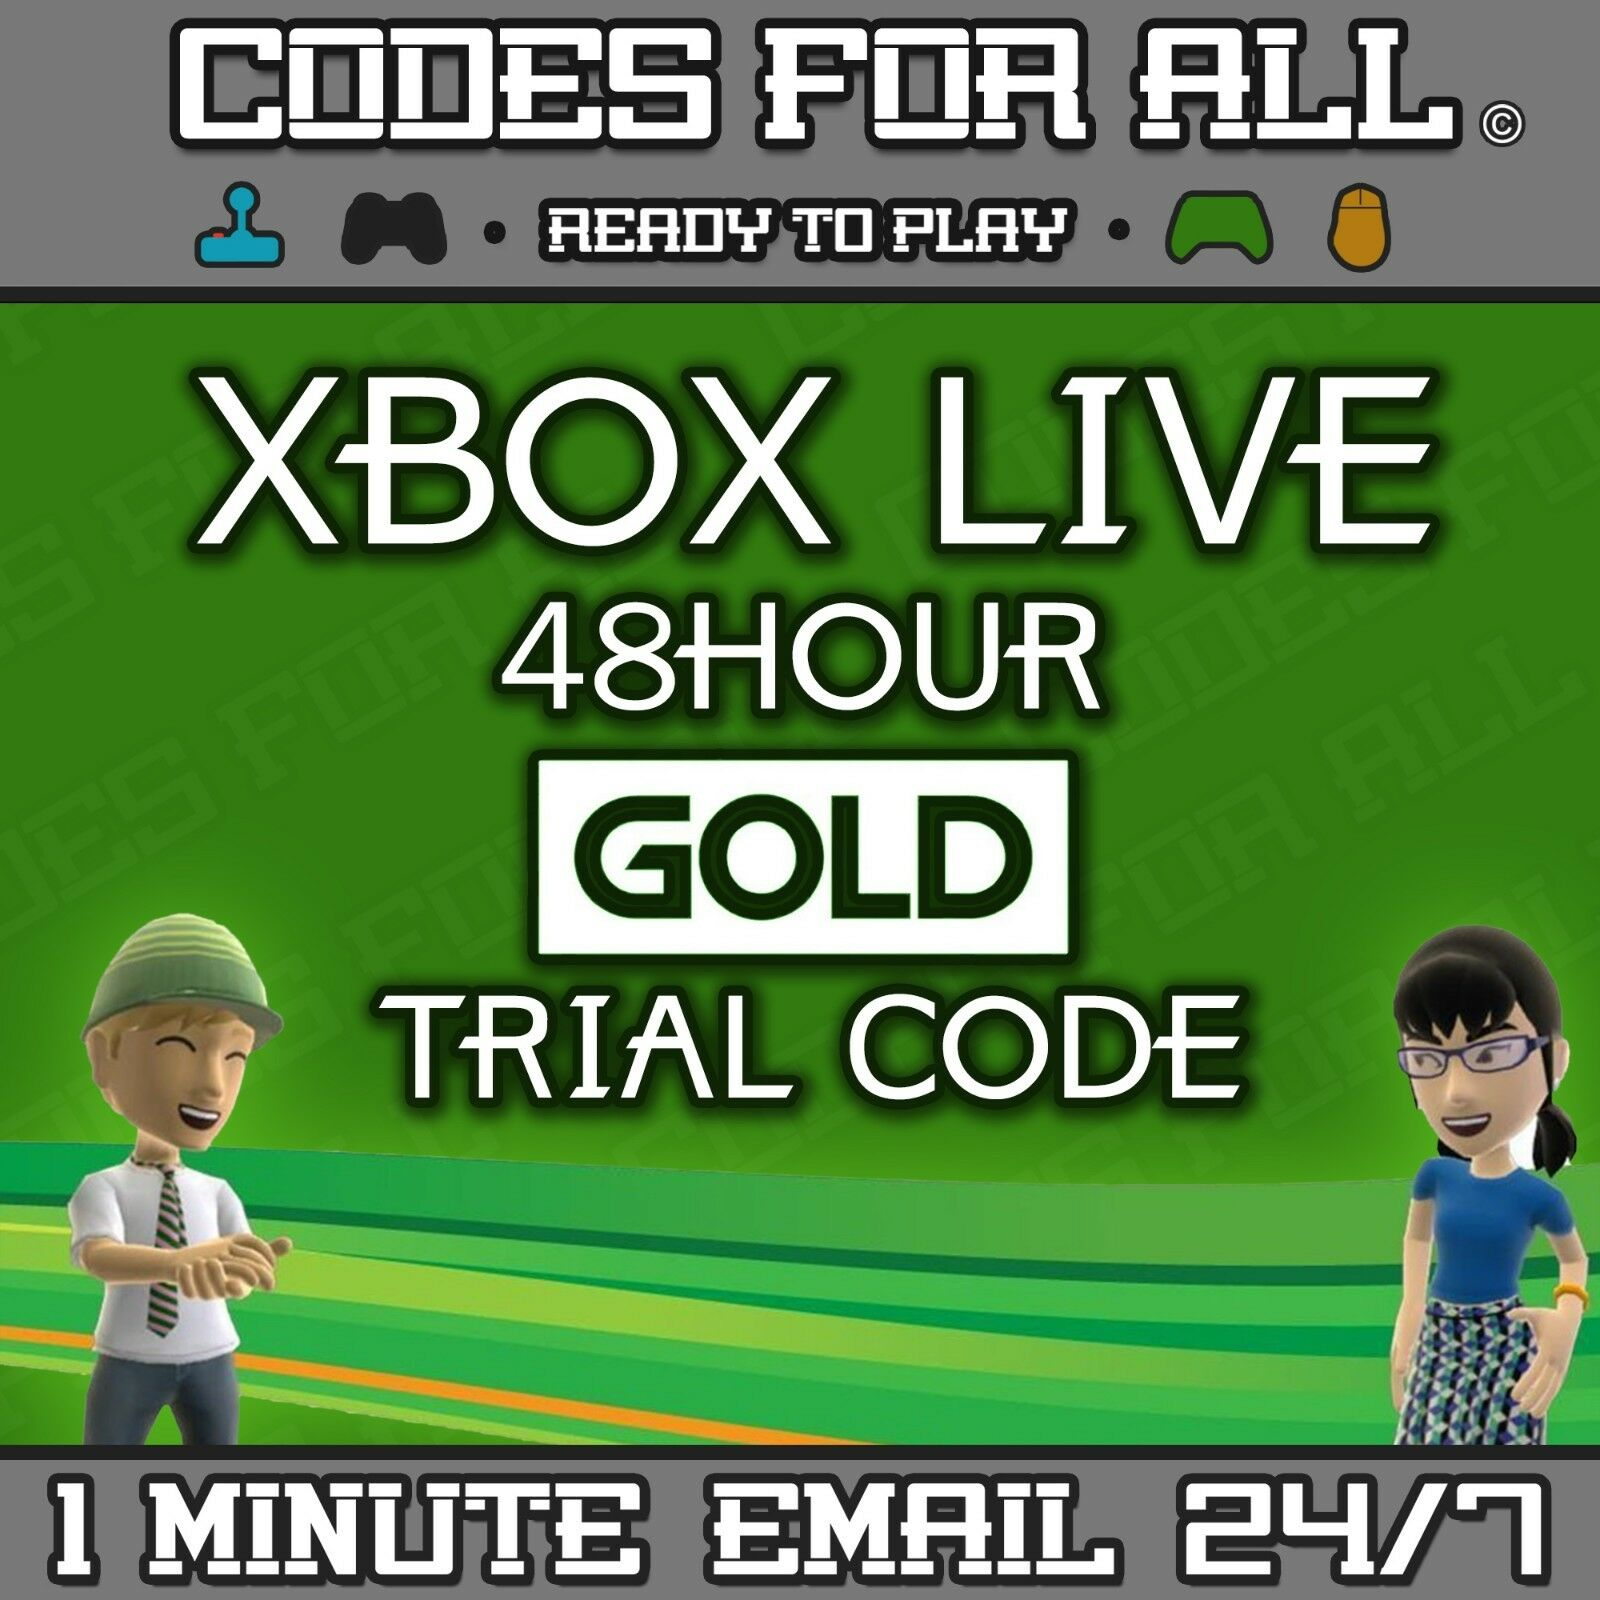 XBOX LIVE 48 HOUR 2 DAYS GOLD TRIAL CODE 48HR - INSTANT DISPATCH